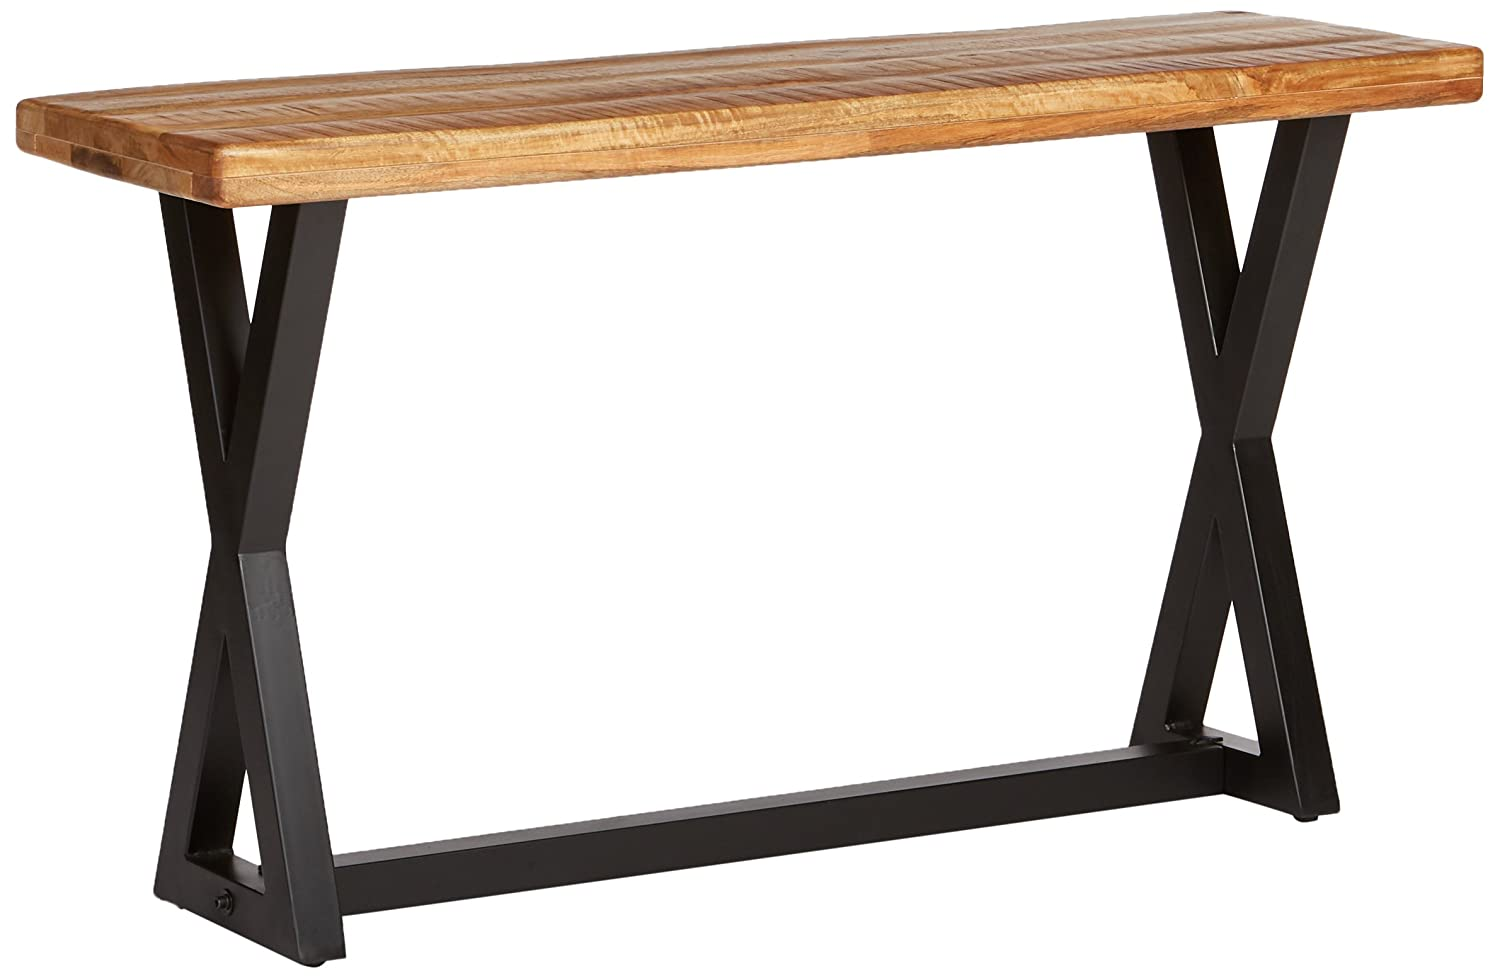 Signature Design by Ashley – Wesling Sofa Table, Brown Top w Black Base